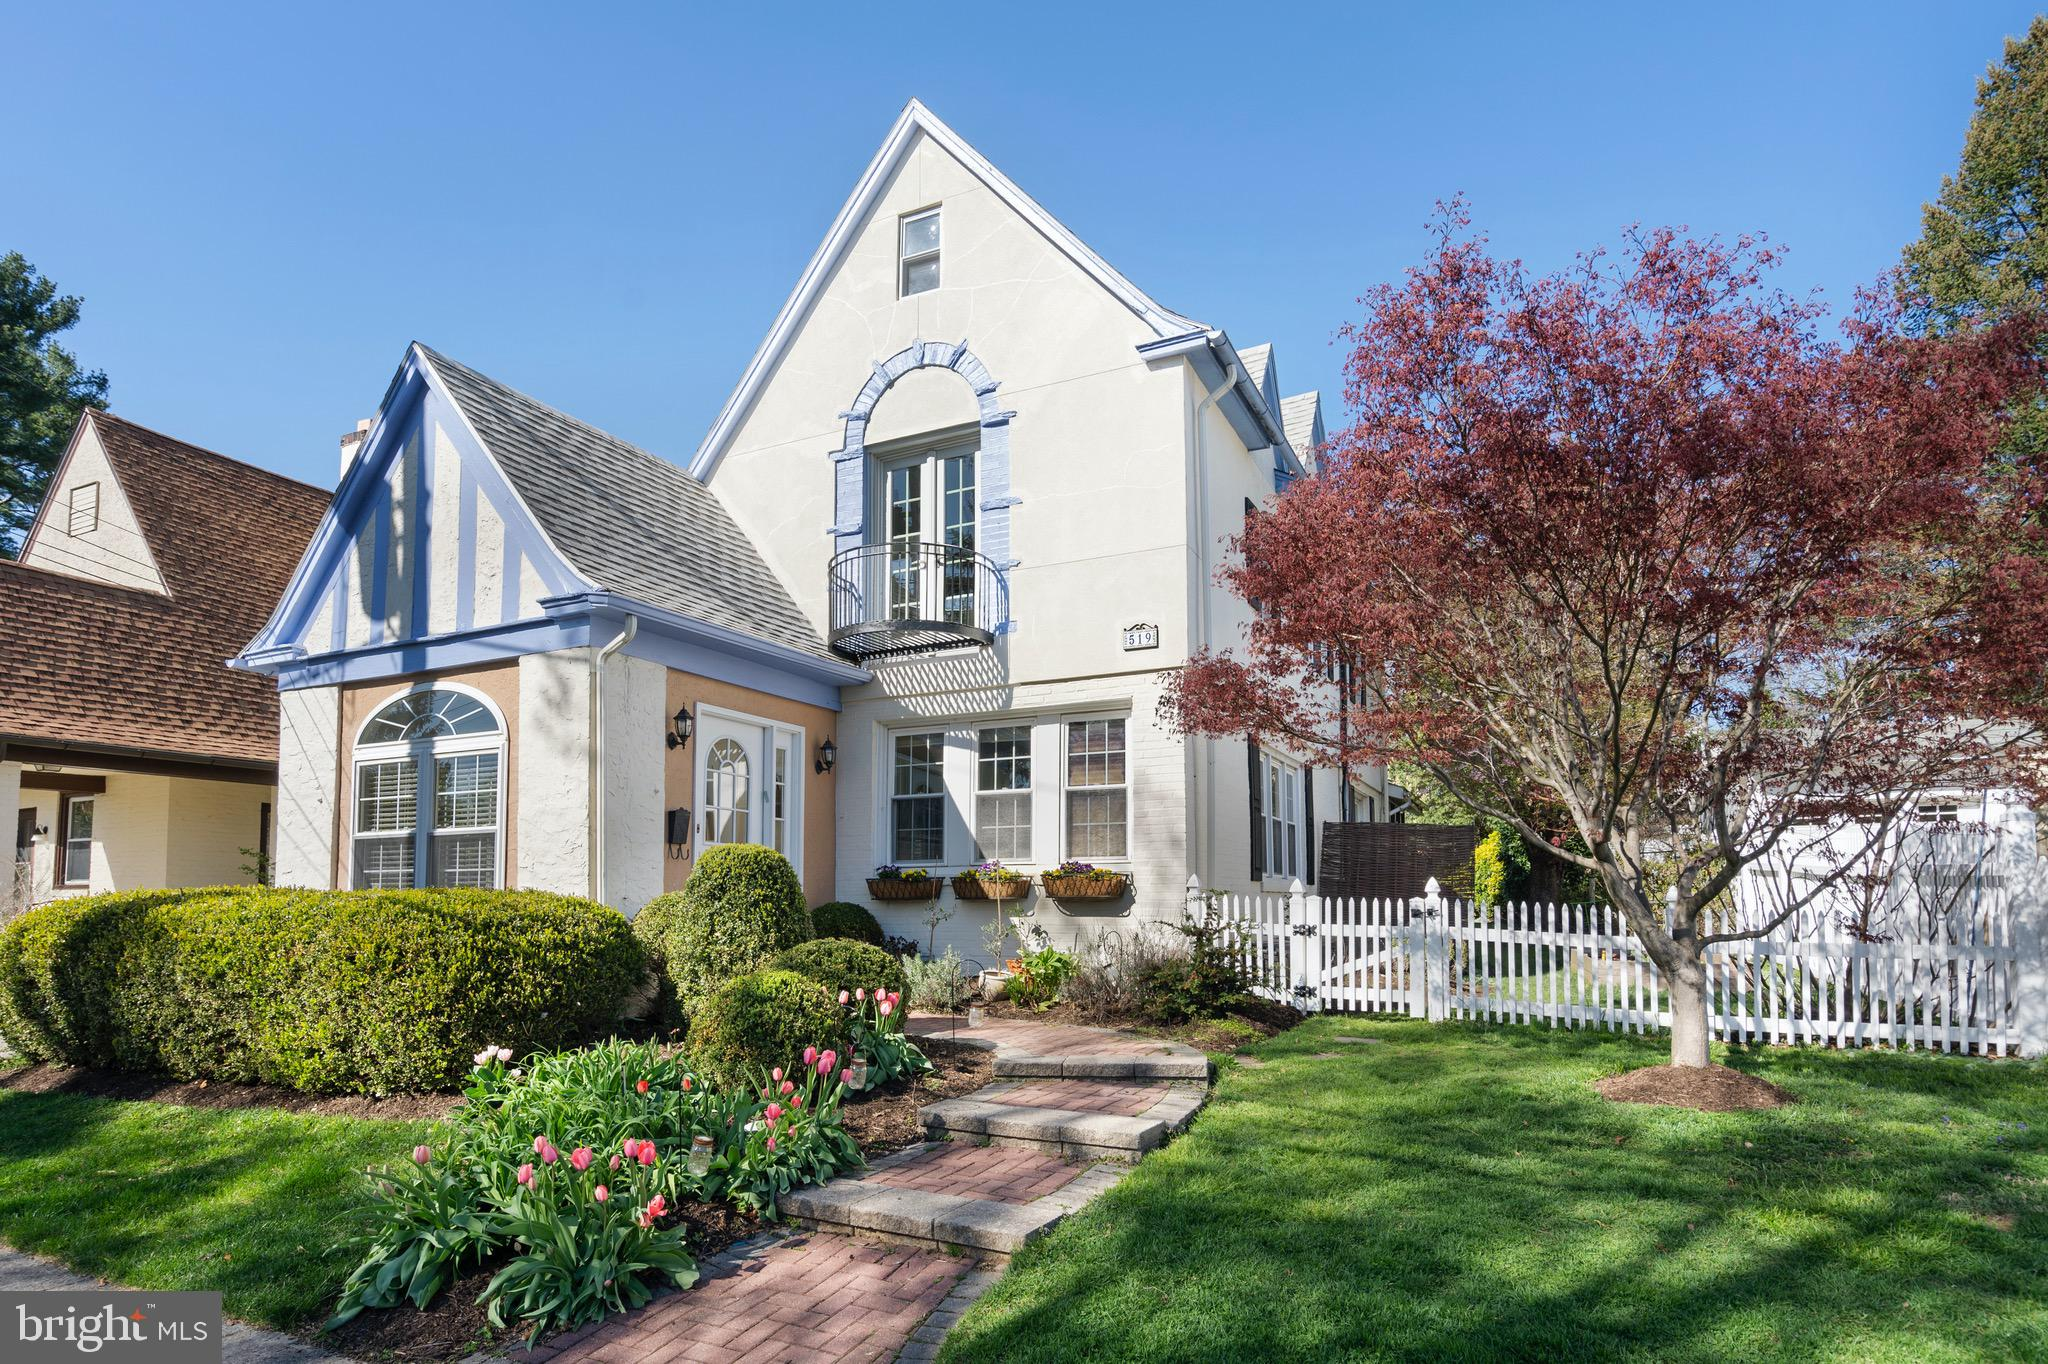 SUN-DRENCHED & MOVE-IN-READY MAIN LINE COLONIAL with 1 Car Garage in a VERY RARE & MOST DESIRABLE WALK TO EVERYTHING LOCATION!!! Minutes to the center of Ardmore & Narberth (R-5 Train, Apple, Starbucks, Movie Theater, Library, Playground, Restaurants and Boutiques), in a SIDEWALK NEIGHBORHOOD and less than 1 BLOCK to the highly acclaimed Lower Merion High School -- nationally recognized as a Blue Ribbon School of Excellence!   This 5-6 bedroom, 3 & 1/2 bath home offers character and details of a Bygone Era w/ FRESH, designer sourced finishes, Tasteful Modern Updates, OPEN CONCEPT FLOOR PLAN & MOVE-IN CONDITION. The gracious vestibule entrance leads to the Large Living Room w/ wood burning fireplace, built-in bookshelves,  & huge walls of windows on 2 exposures OPEN to the Large Dining Room w/Wall of Windows & Updated Kitchen w/ Vintage White Maple Cabinetry, Honed Absolute Granite Countertops, Carrara Marble Subway Tiled Backsplash, Stainless Appliances including 4 burner range w/ Stainless Hood, French Door Refrigerator, Deep Sink w/ sprayer, Large Built-In Storage Pantry &Doorto the SERENE 3 Season Sunroom w/ Vaulted Ceiling & FULLY FENCED YARD (Perfect for BBQ's, Outdoor Entertaining, Dining Al Fresco, Campfires & WONDERFUL MEMORIES!!!) -- the indoor/outdoor flow from both the Kitchen and Dining Room flow nicely to the side and year yards - circular flow at its best! The gracious carved staircase w/ windowed landing accesses the second floor offering 4 bedrooms including the Owners Suite bathed in natural sunlight and offering 4 Large Closets & Juliet Balcony accessing the Full Updated Hall Bath w/ Marble Tiled Floor, Vintage Painted Vanity, Beadboard and Tub Shower - Styled to PERFECTION!!! The 3rd floor offers Br#5 w/ Skylight & Ensuite Full Hall Bath w/ Original Claw Foot Tub, Large Storage Room and Bedroom #6 w/ Skylight (currently used as home office). The Finished Lower Level offers Amazing Additional Finished Living Space including Play Room, FULL Bath w/ 